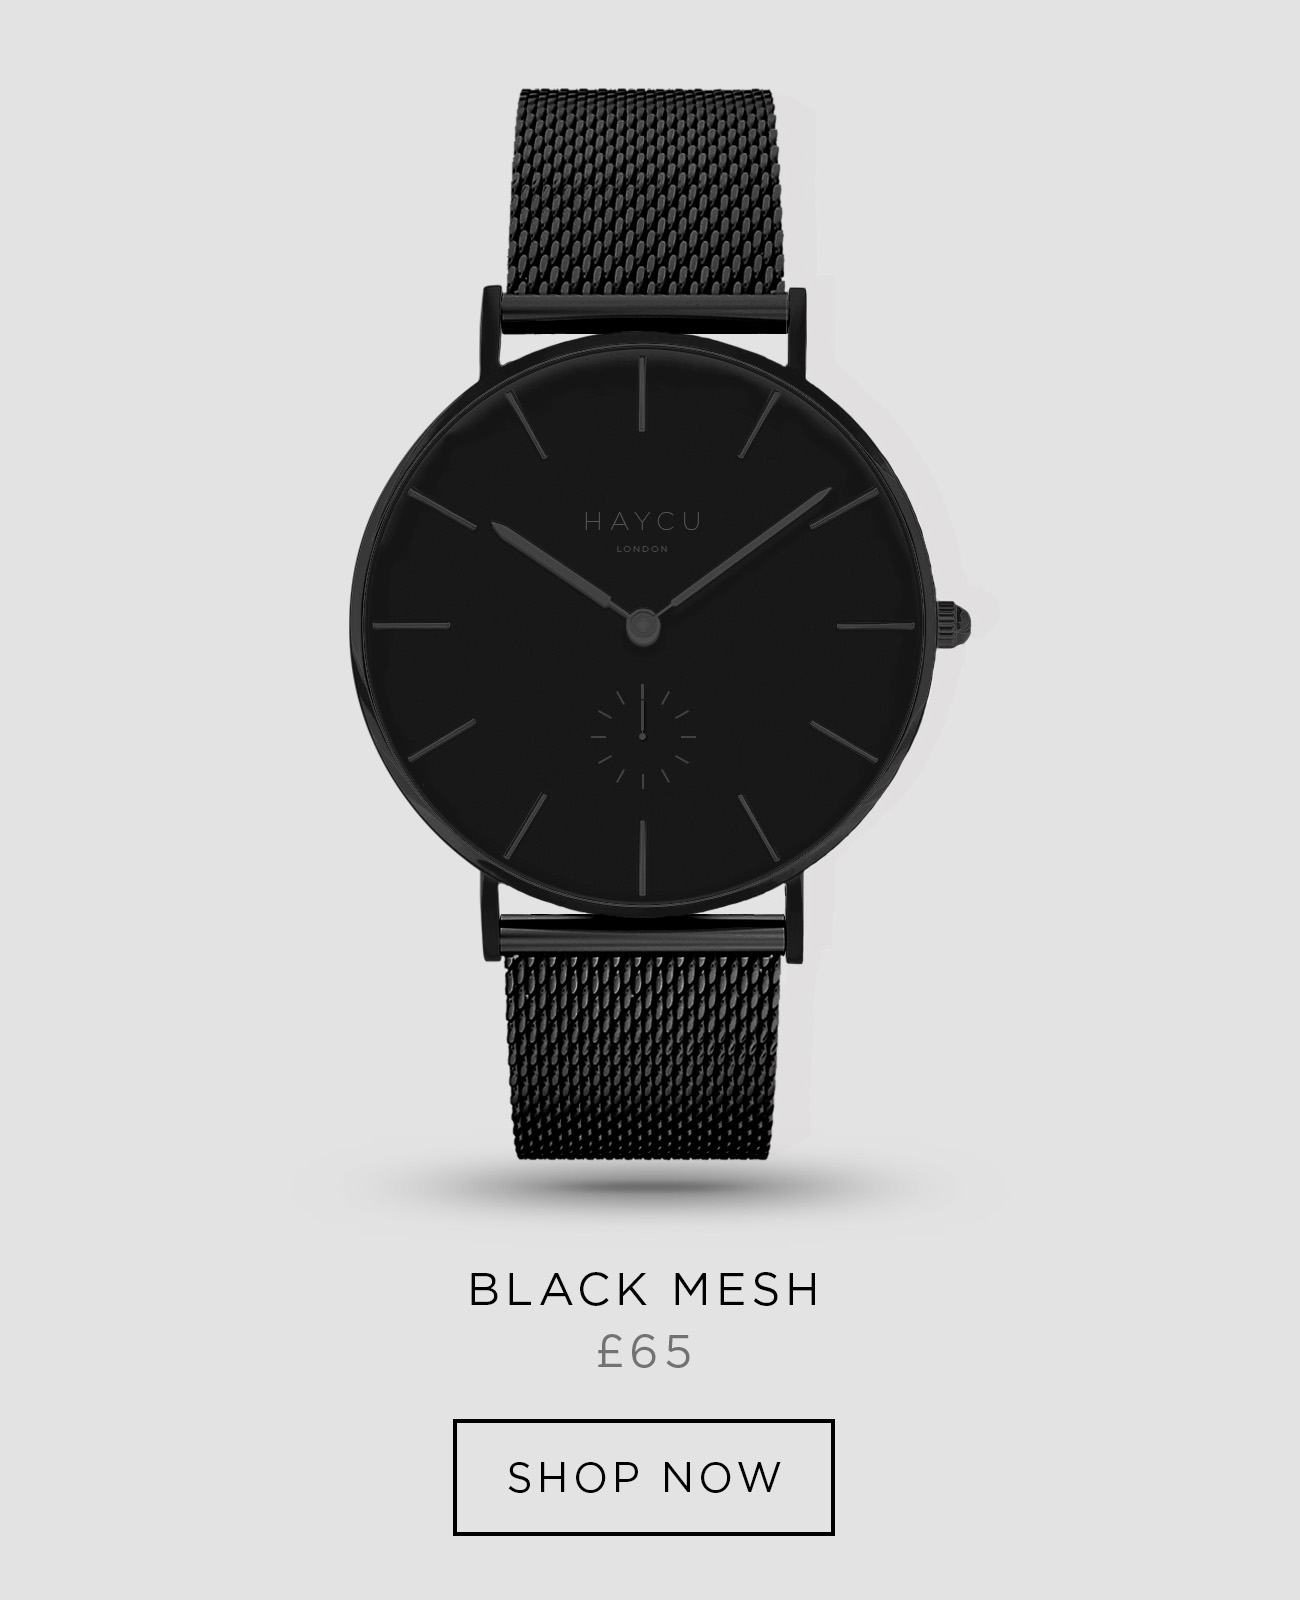 Black and all black mesh